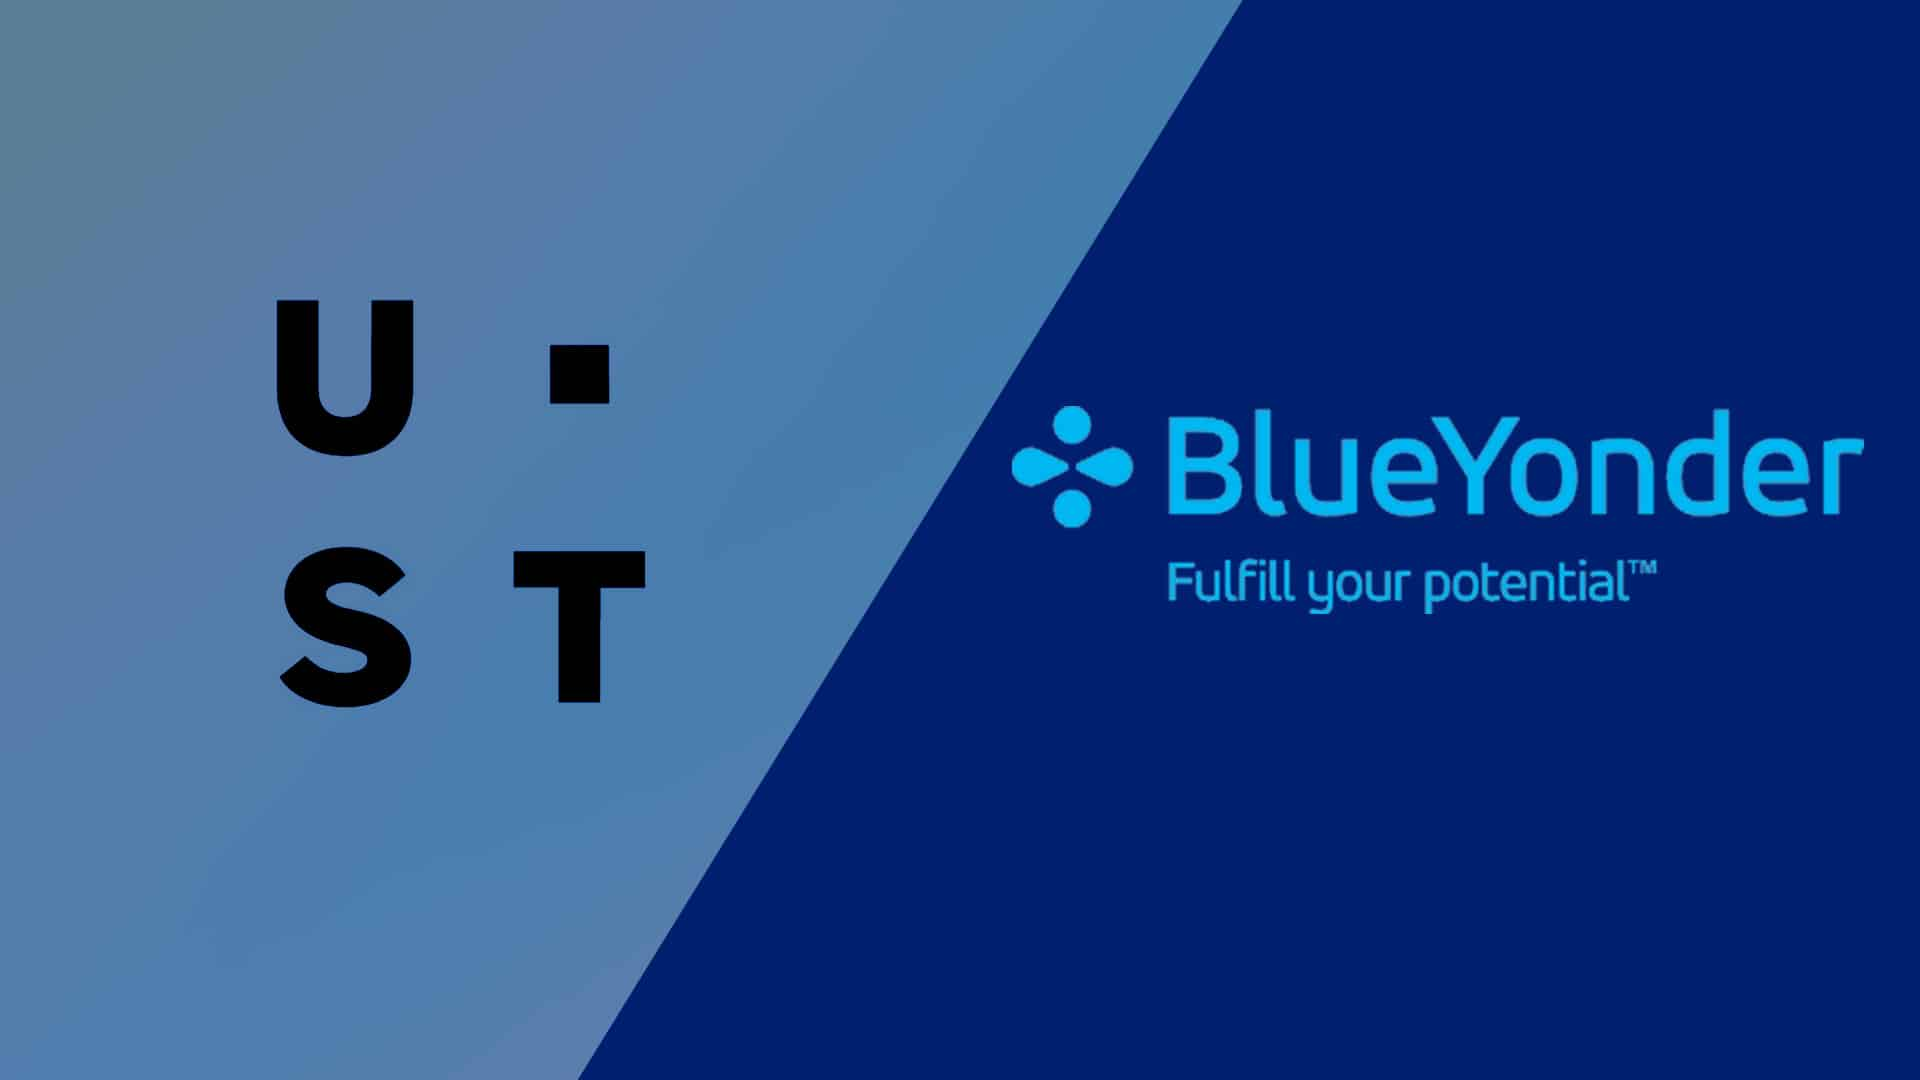 UST Accelerates Digital Transformation for Retailers by Partnering with Blue Yonder